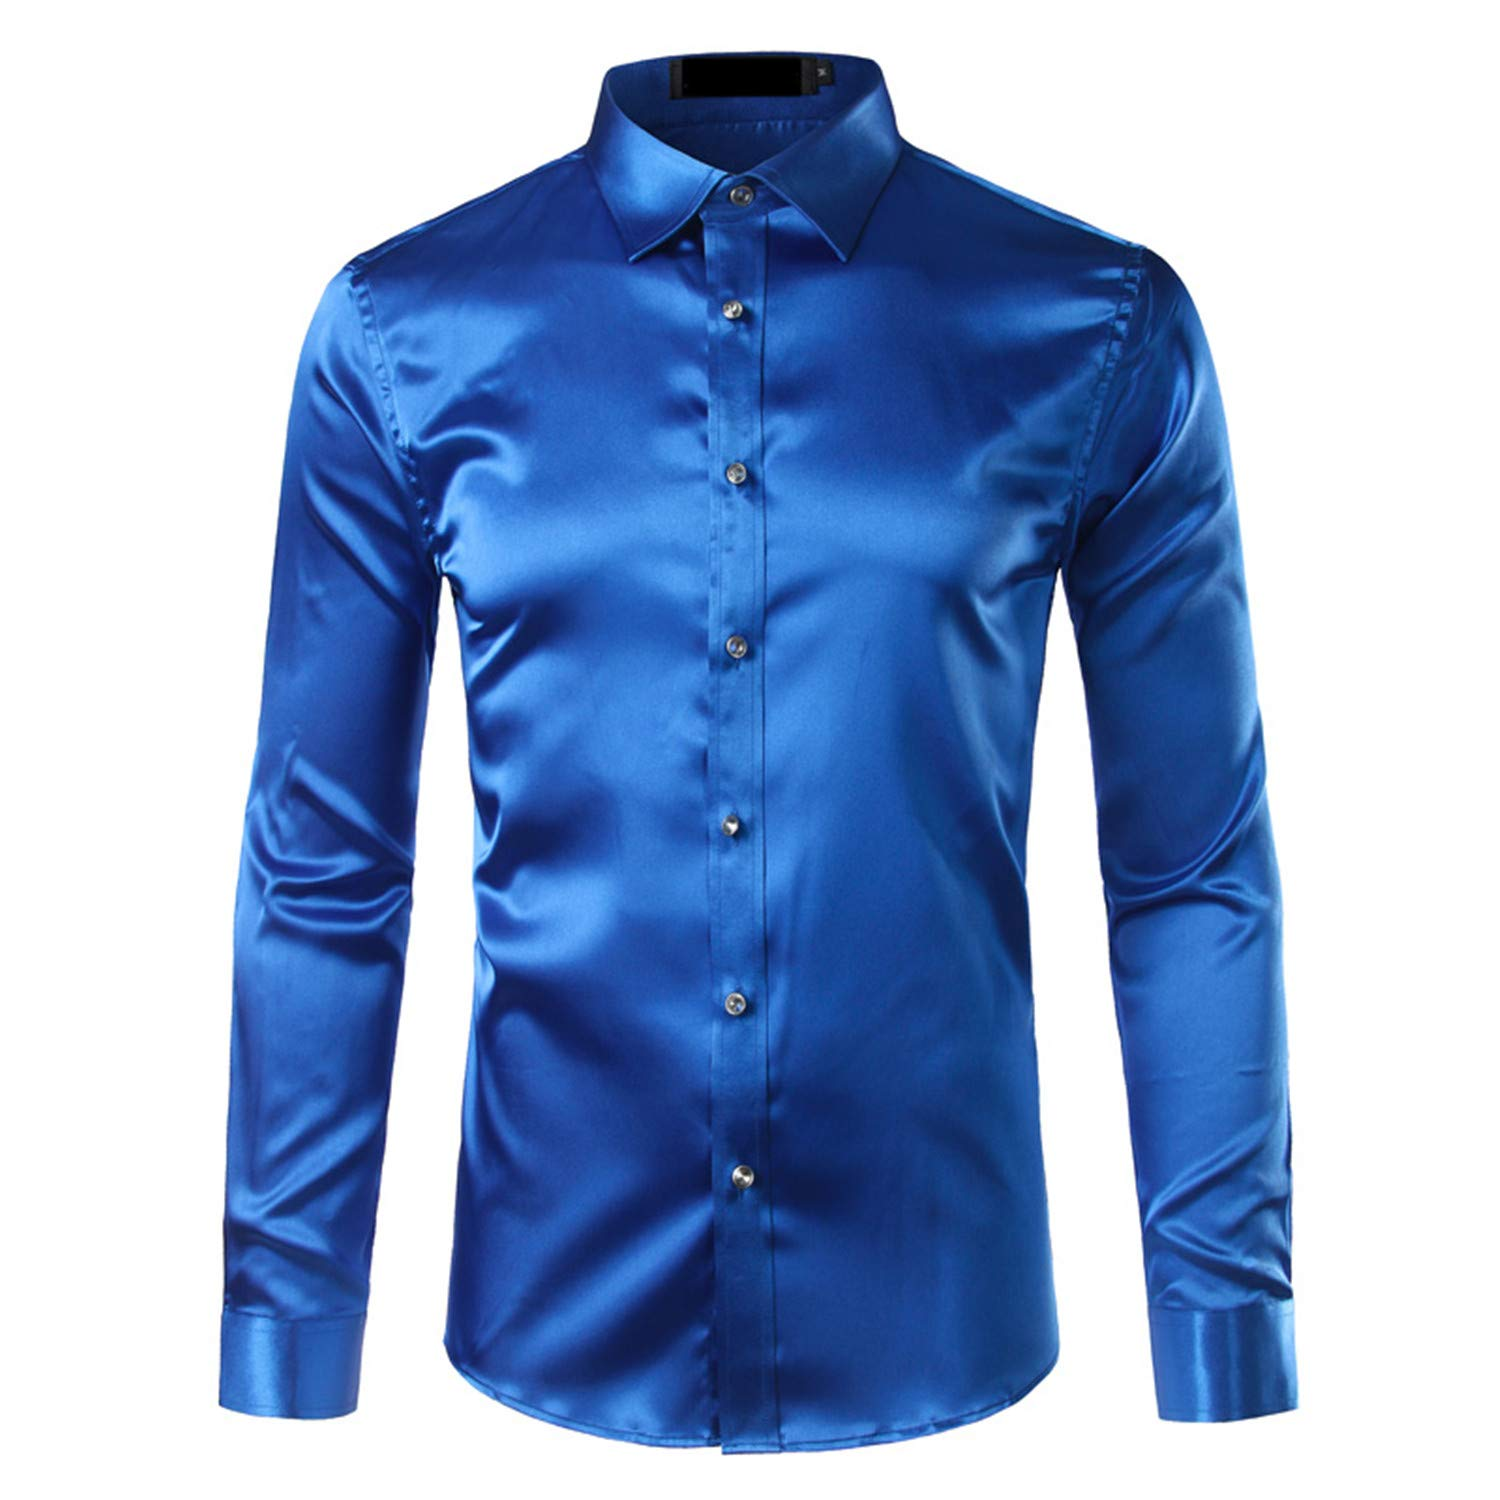 996ca19ce49fe Cherstee Silk Satin Shirt Men Chemise Homme Casual Long Sleeve Slim Fit  Mens Dress Shirts Business Wedding Male Shirt at Amazon Men s Clothing  store